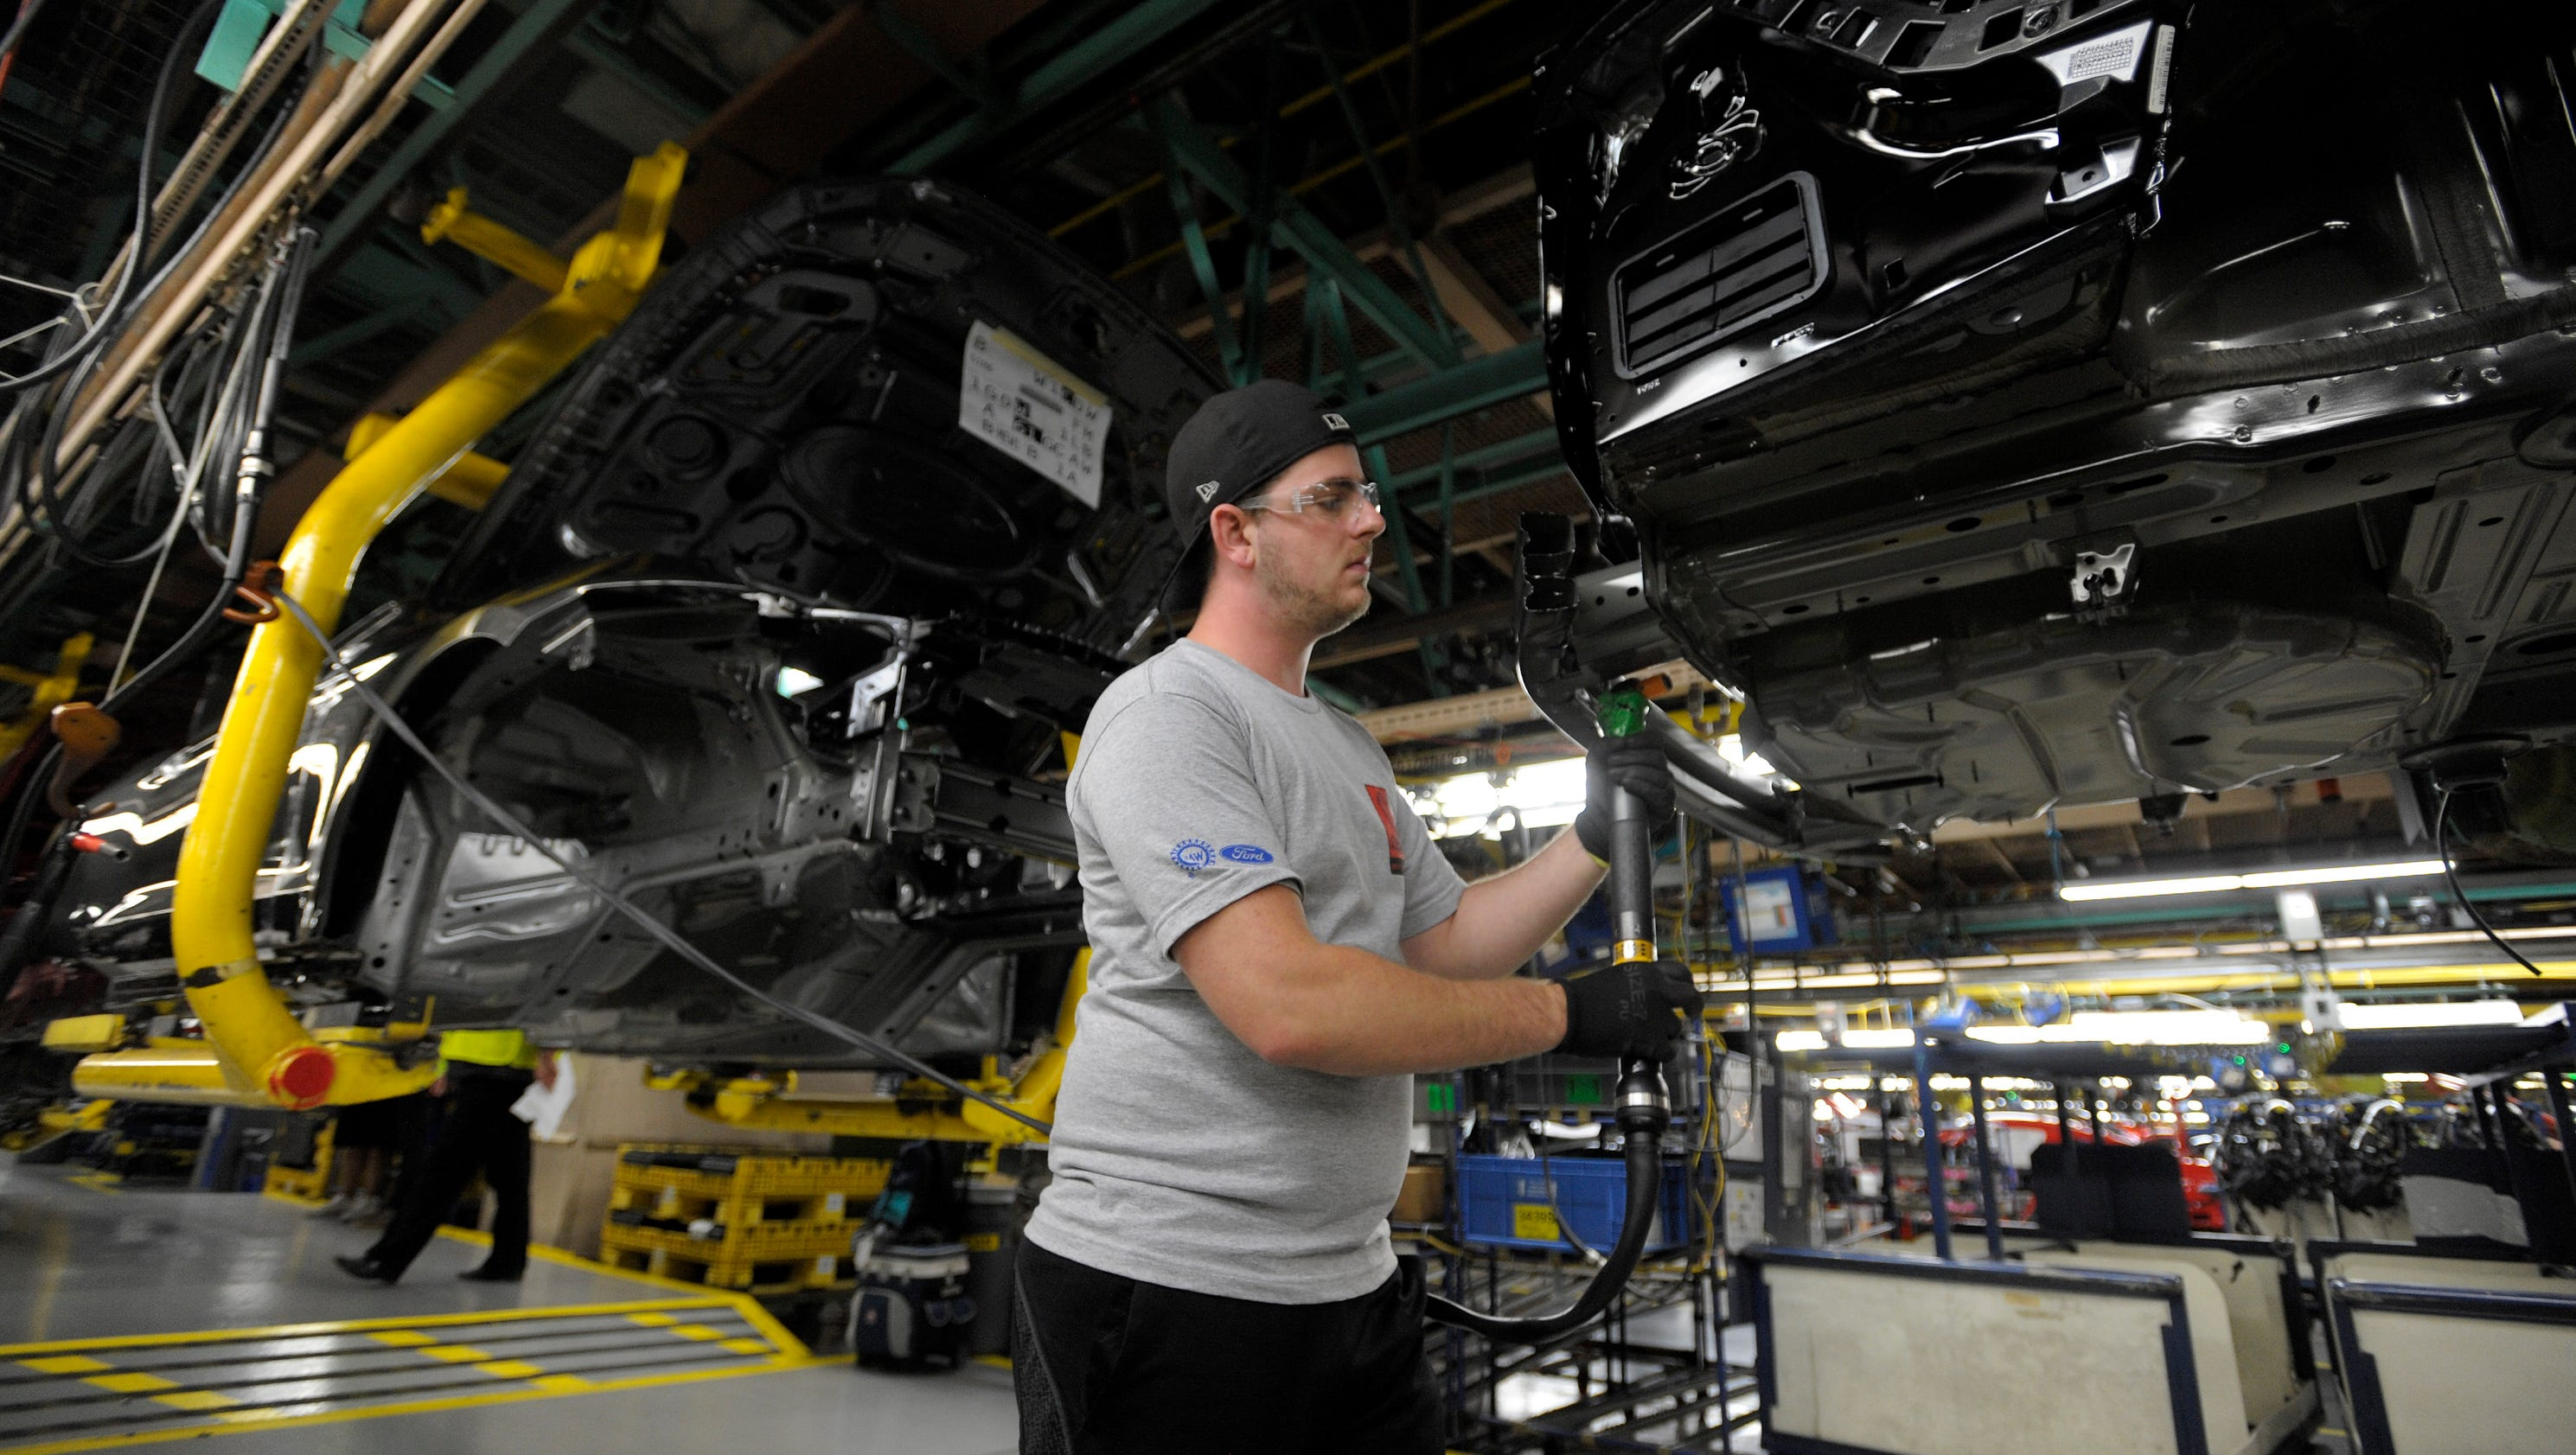 Ford shows off Shelby GT350R Mustang at Flat Rock plant